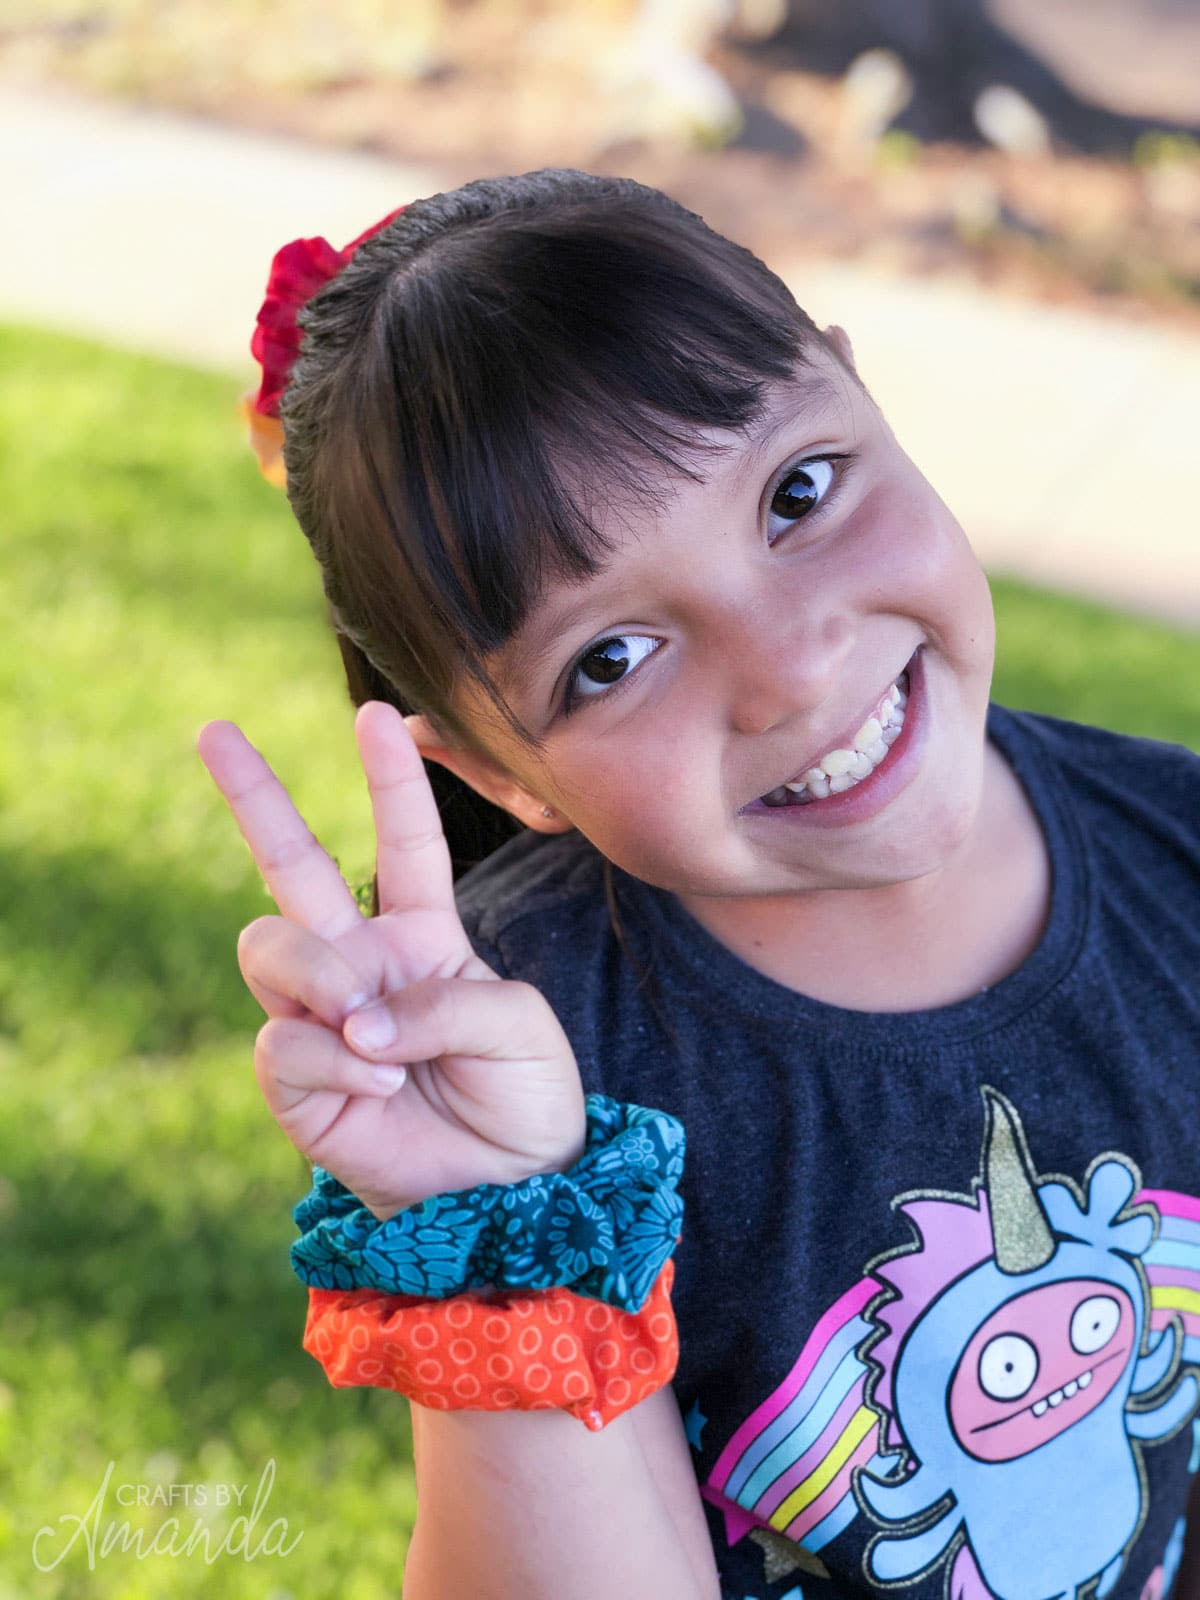 little girl smiling giving peace sign with scrunchies on her wrist